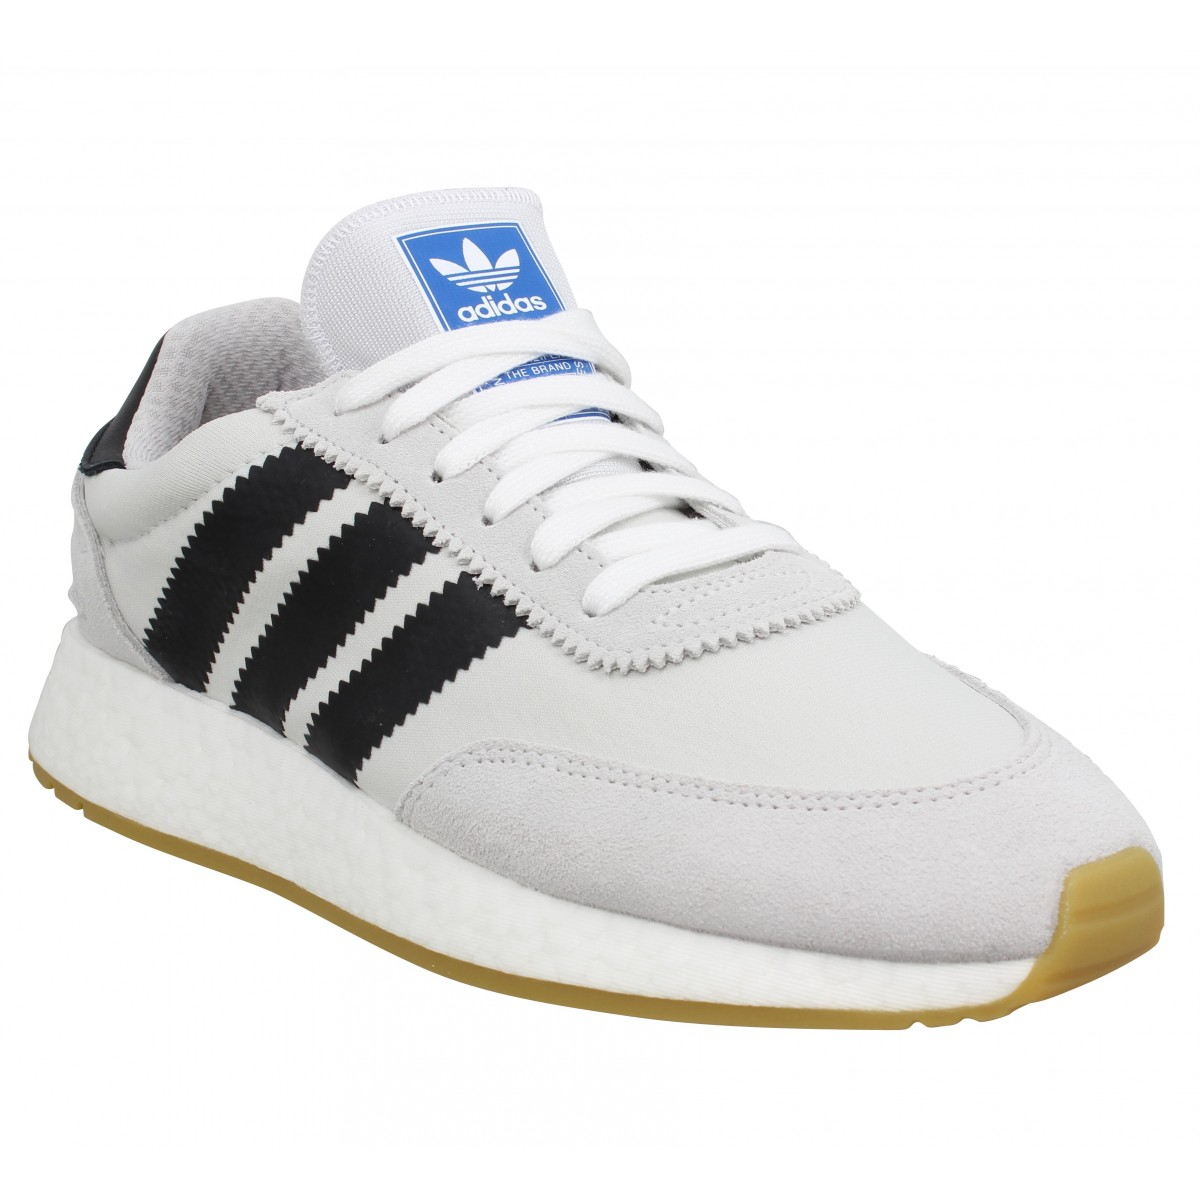 Adidas Homme I-5923 Toile -39 1/3-gris